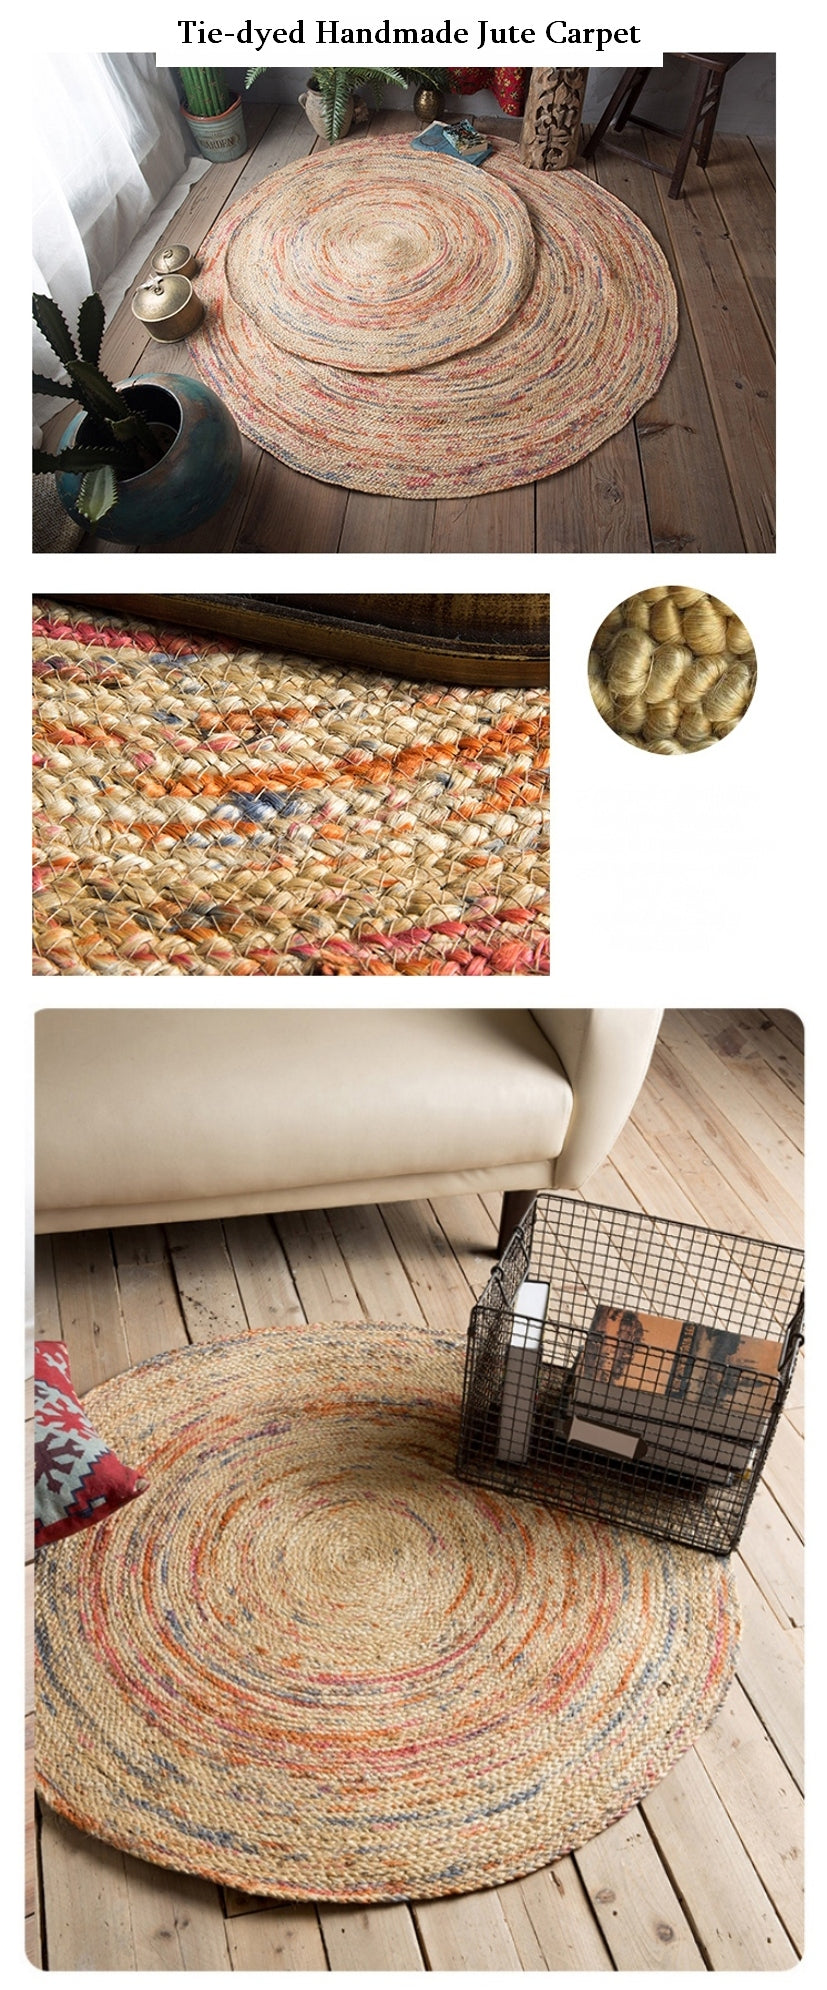 100% Handmade India Jute Floor Carpet, Round Floor Carpet and Rugs